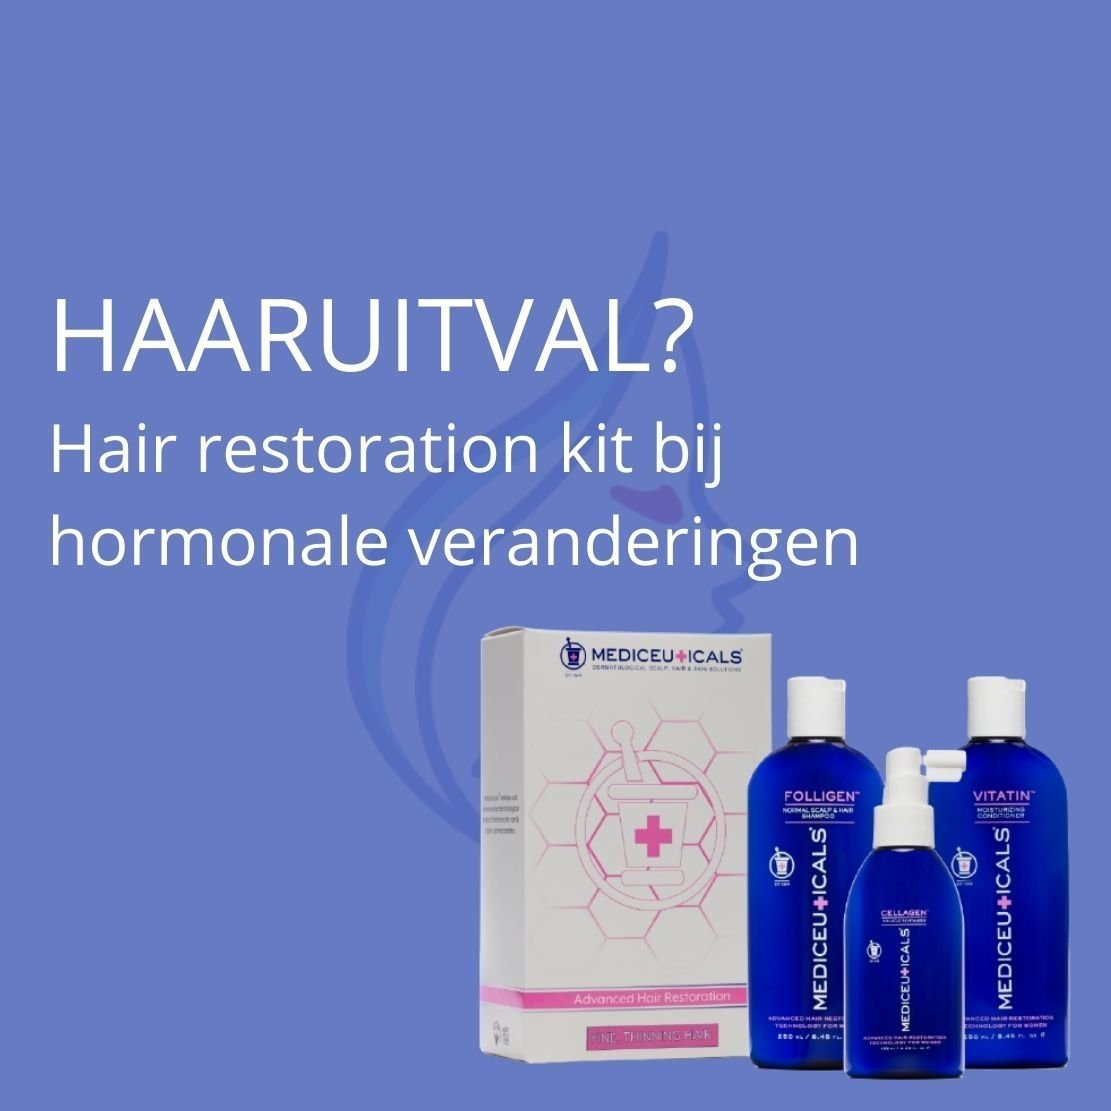 Hair restoration kit bij haaruitval